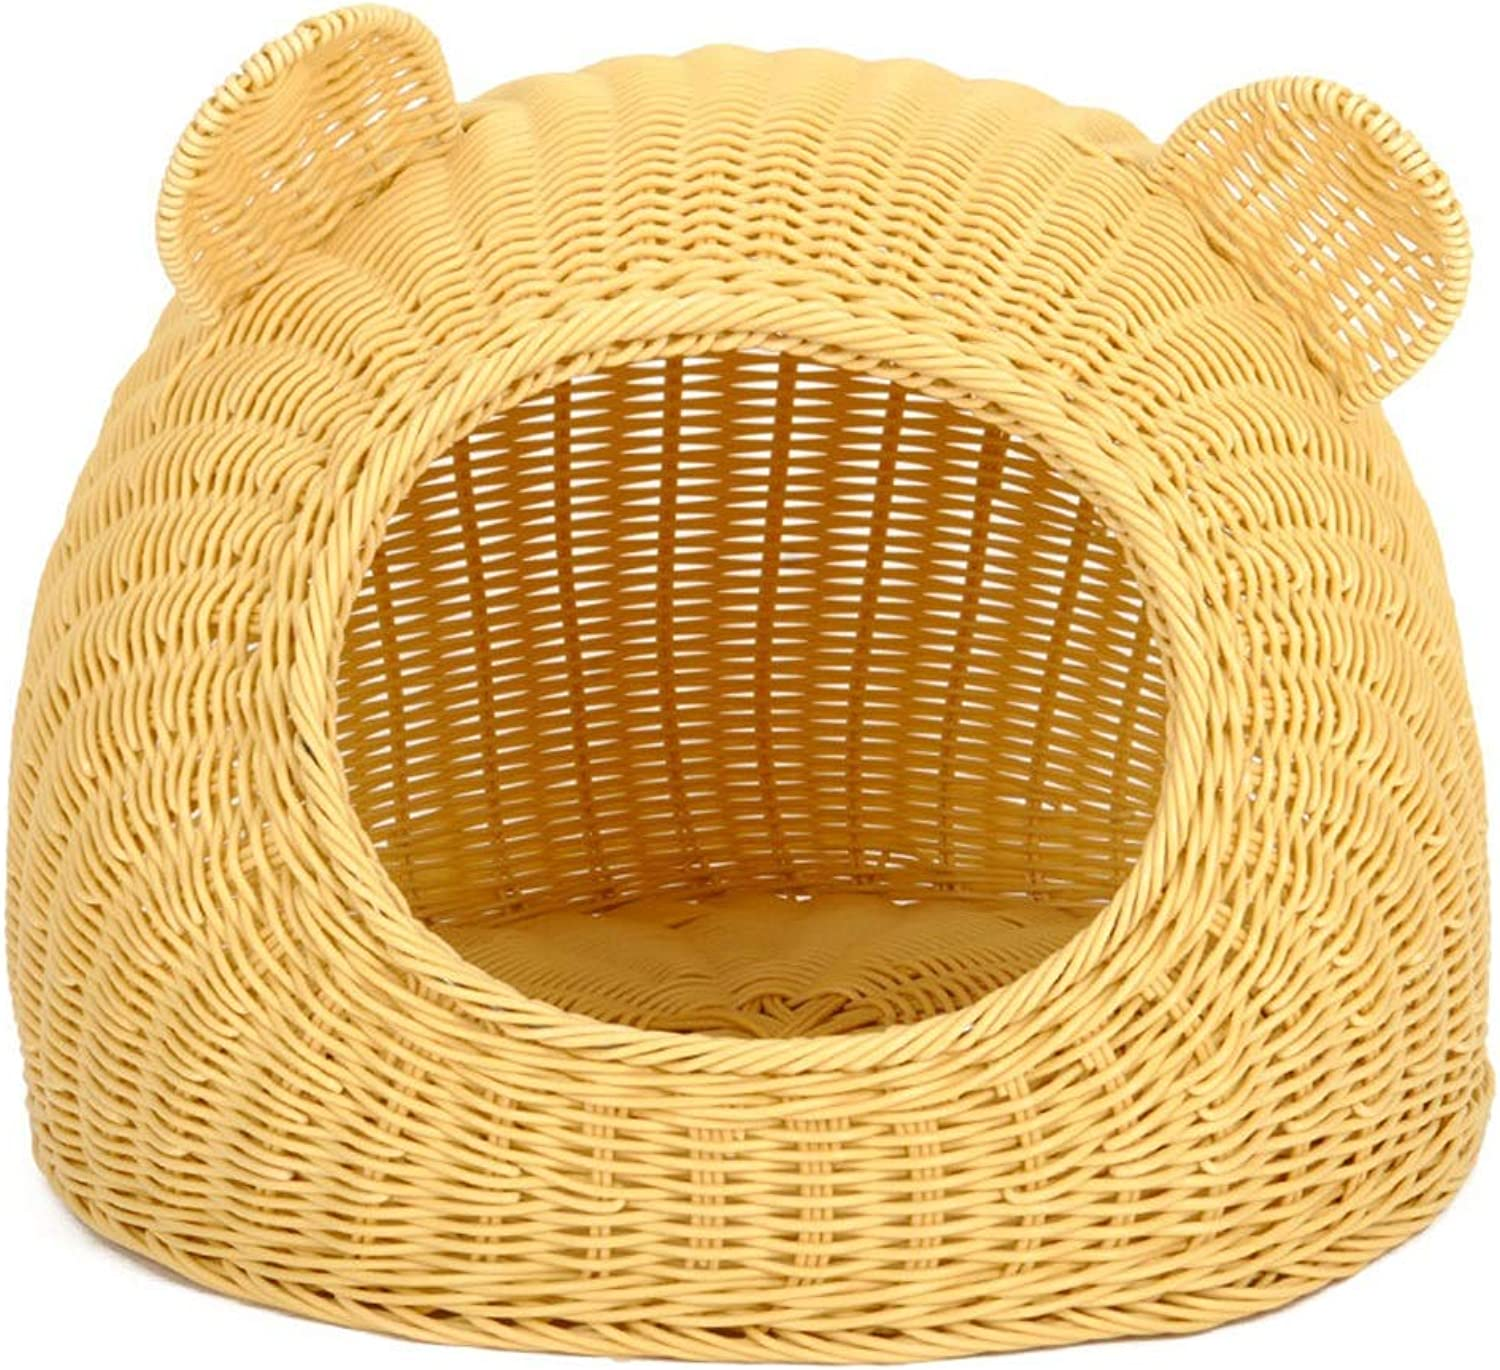 Alppq Primary color Rattan Nest Bamboo Plastic Cat House Cat Ears Cat Bed Four Seasons Universal Doghouse Pet Cave Luxury Soft Washable Cat Nest Villa Easy to Clean Comfort Cat Dog Nest Pet Bed